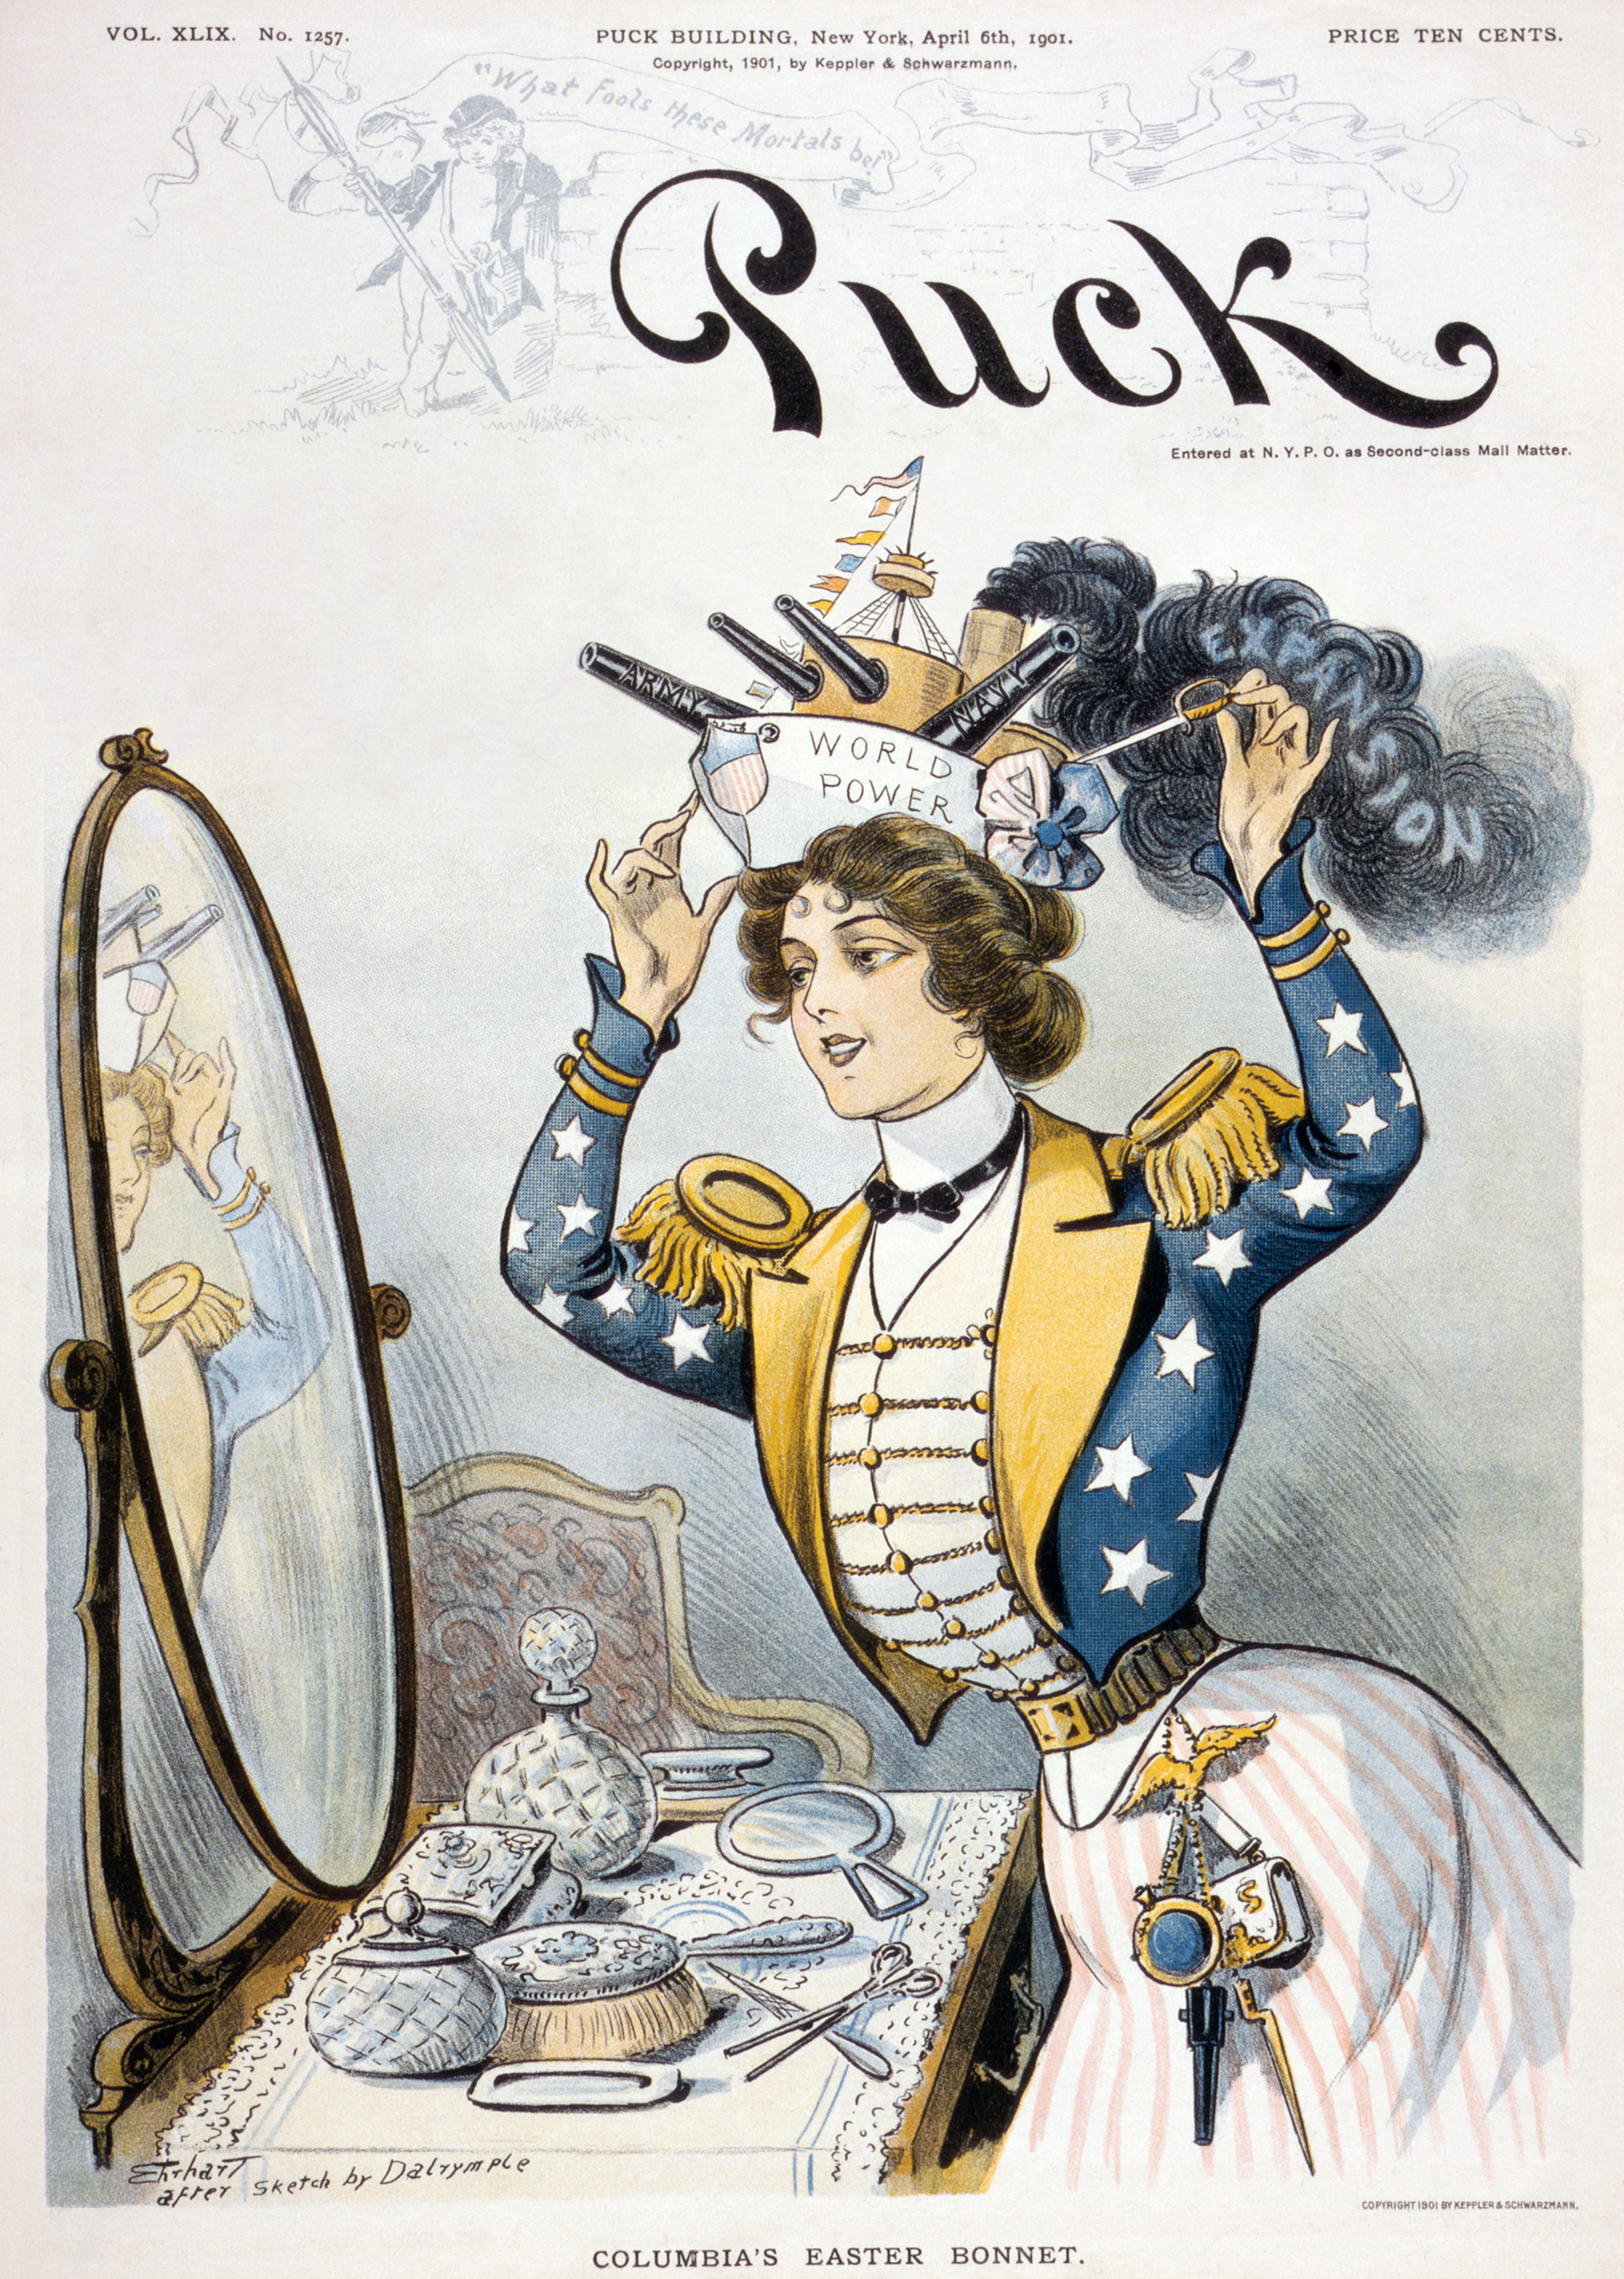 american imperialism on the cover of puck published on 6 1901 in the wake of gainful victory in the spanish american war columbia the national personification of the